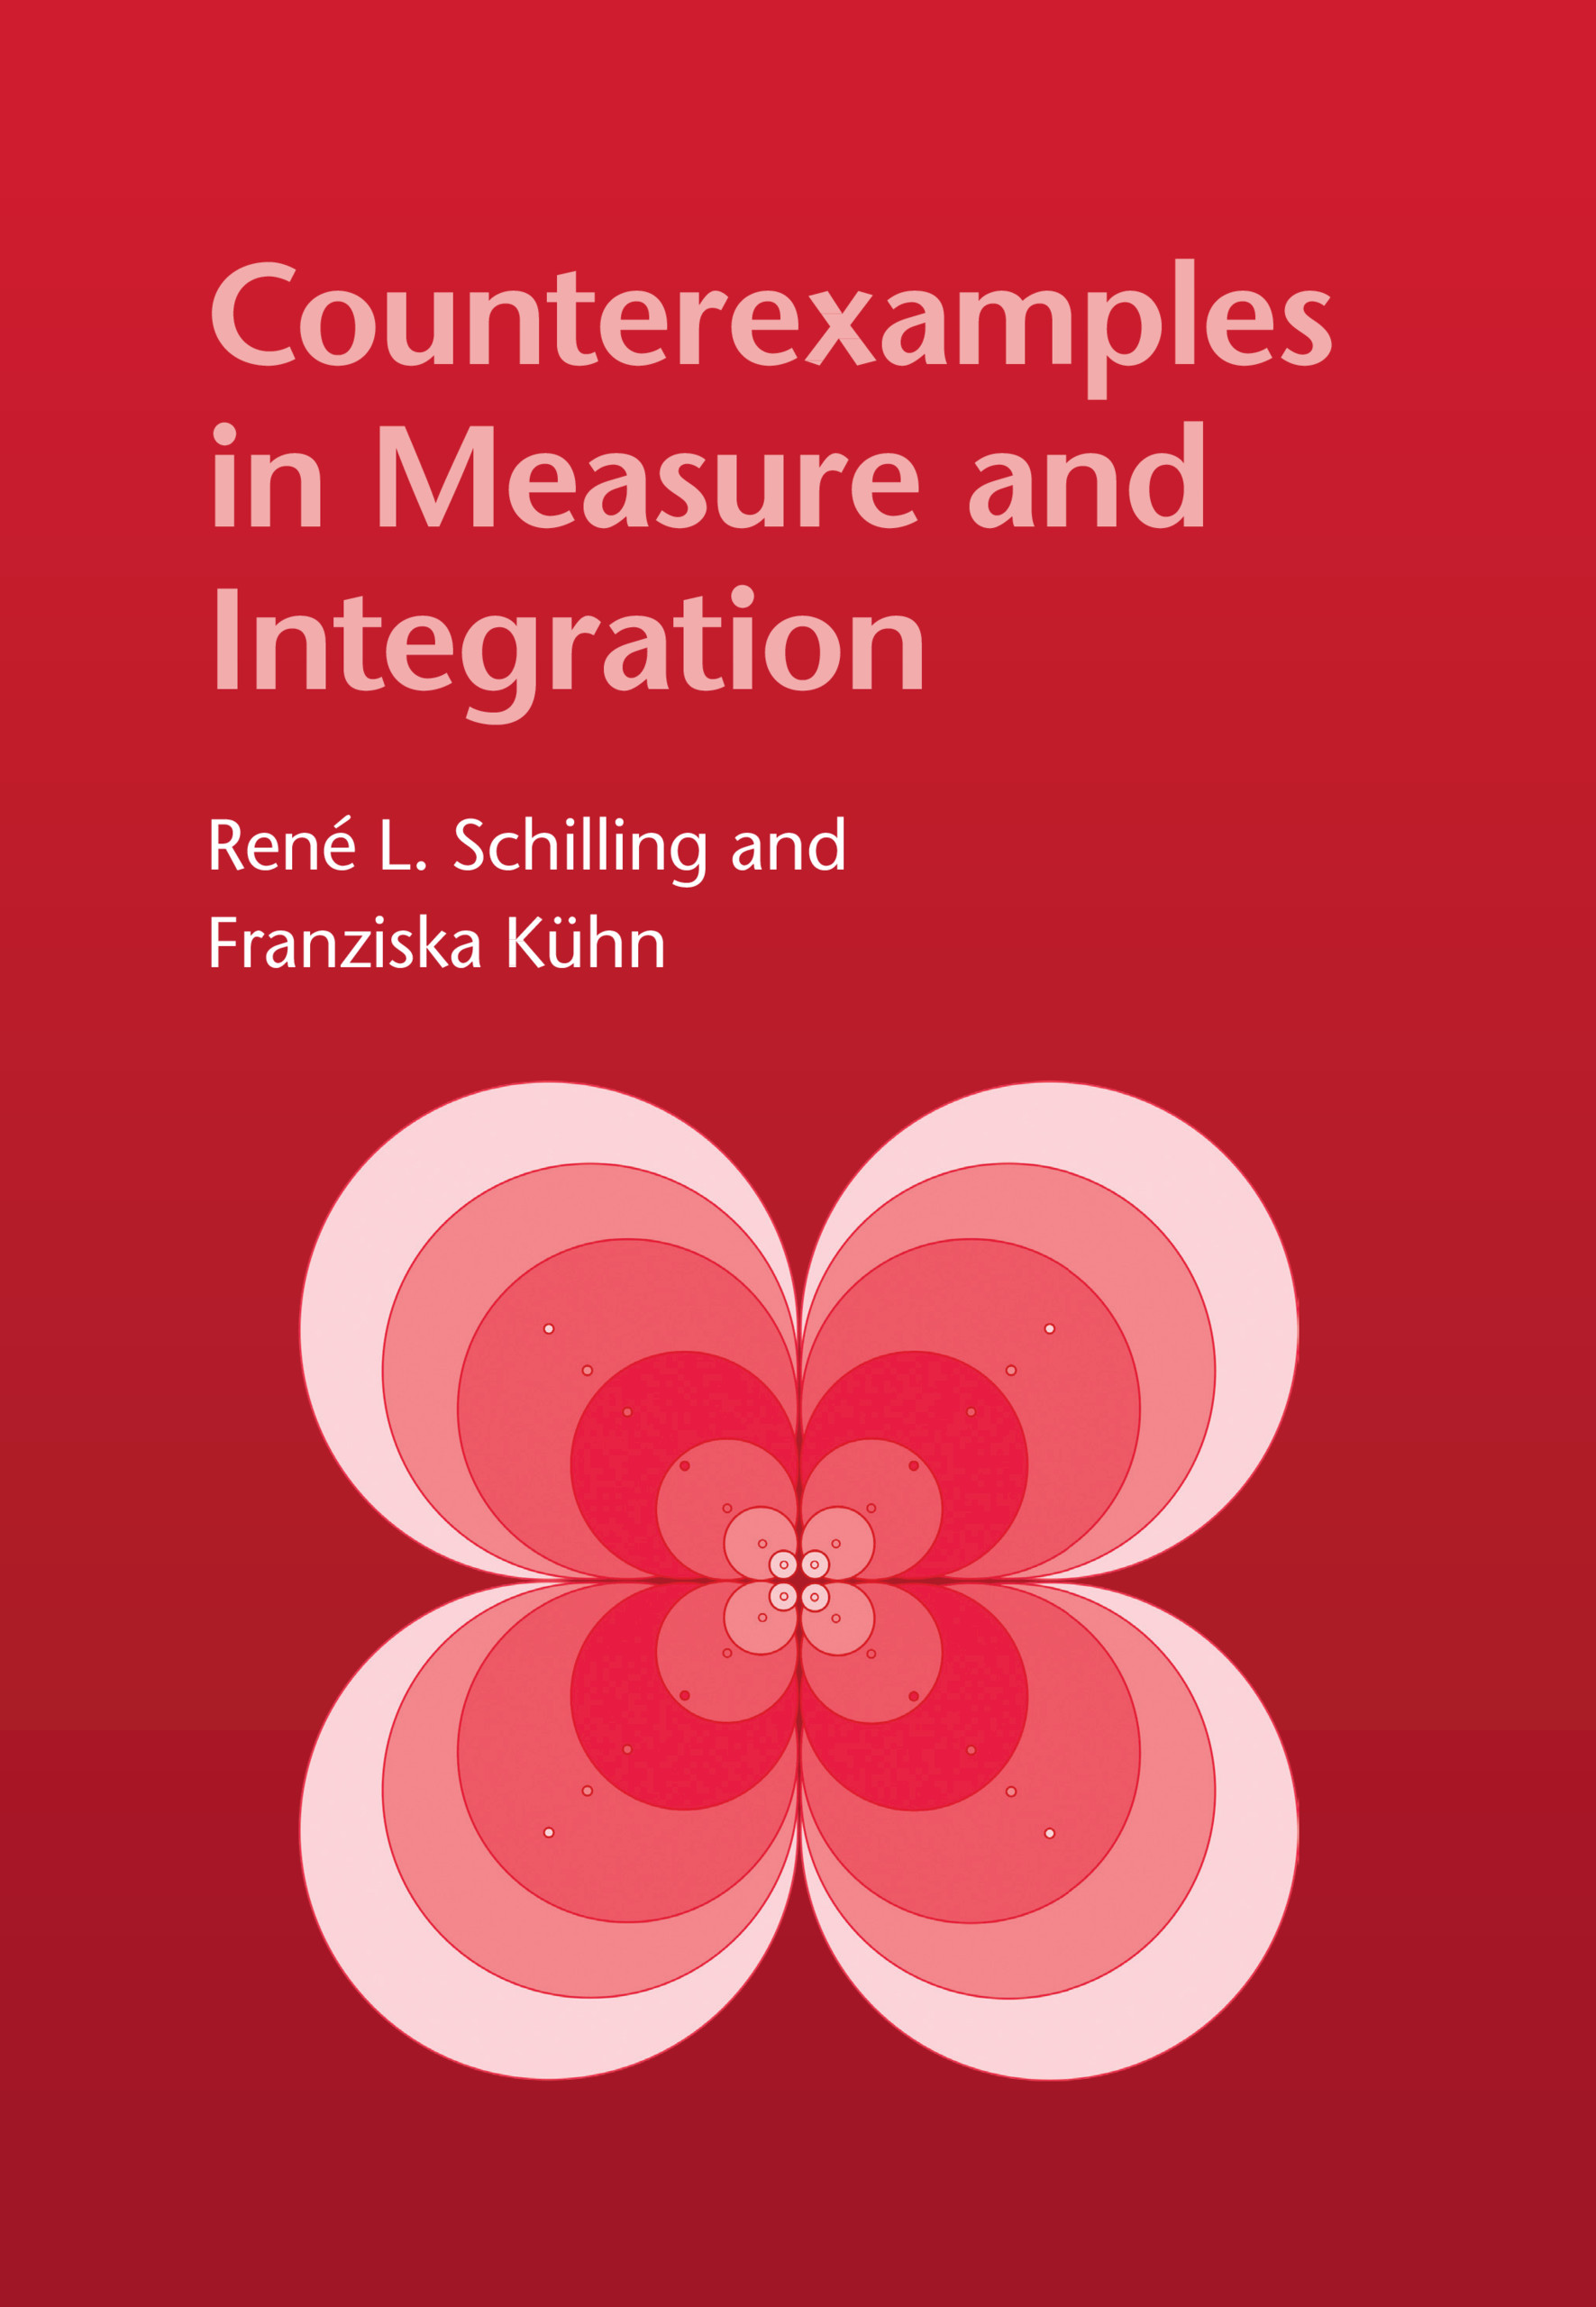 Cover of Counterexamples in Measure and